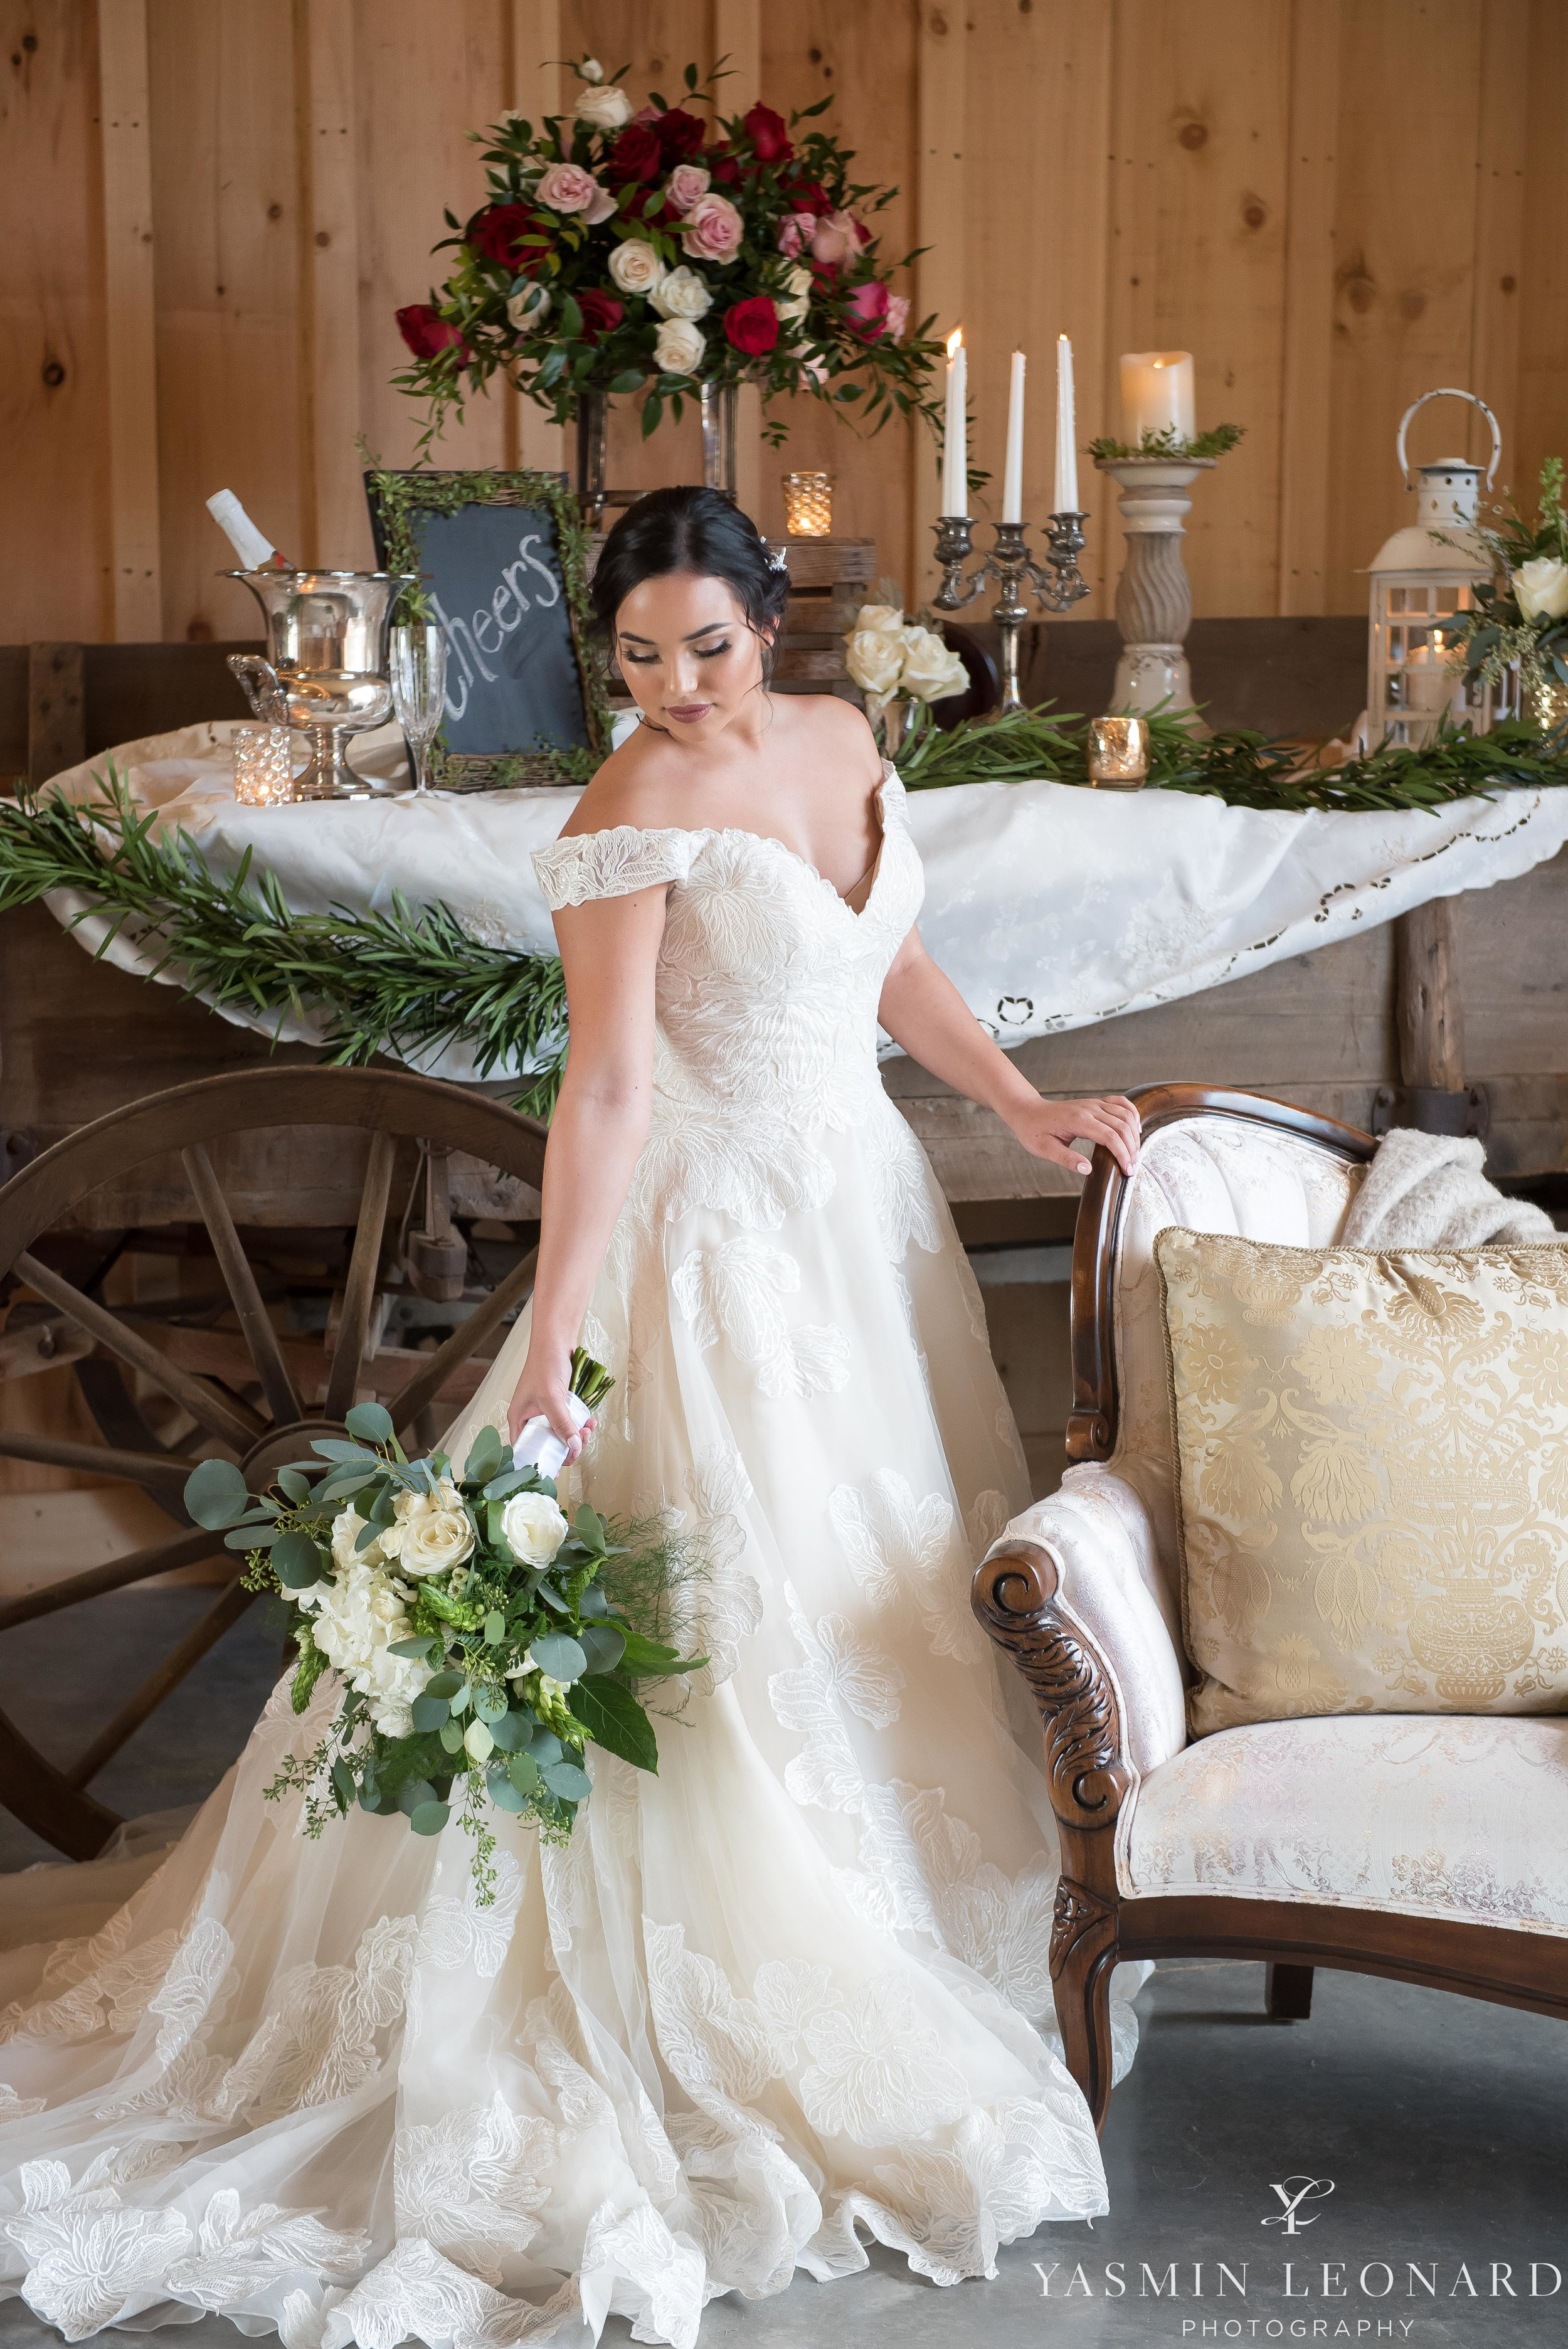 Old Homeplace Vineyard - Grits and Glitter - Dashing Dames Bridal Boutique - Just Priceless - Yasmin Leonard Photography - High Point Weddings - NC Weddings - NC Wedding Venues - High Point Jewelers - NC Wines - NC Vineyards - Cupcake Cuties-44.jpg